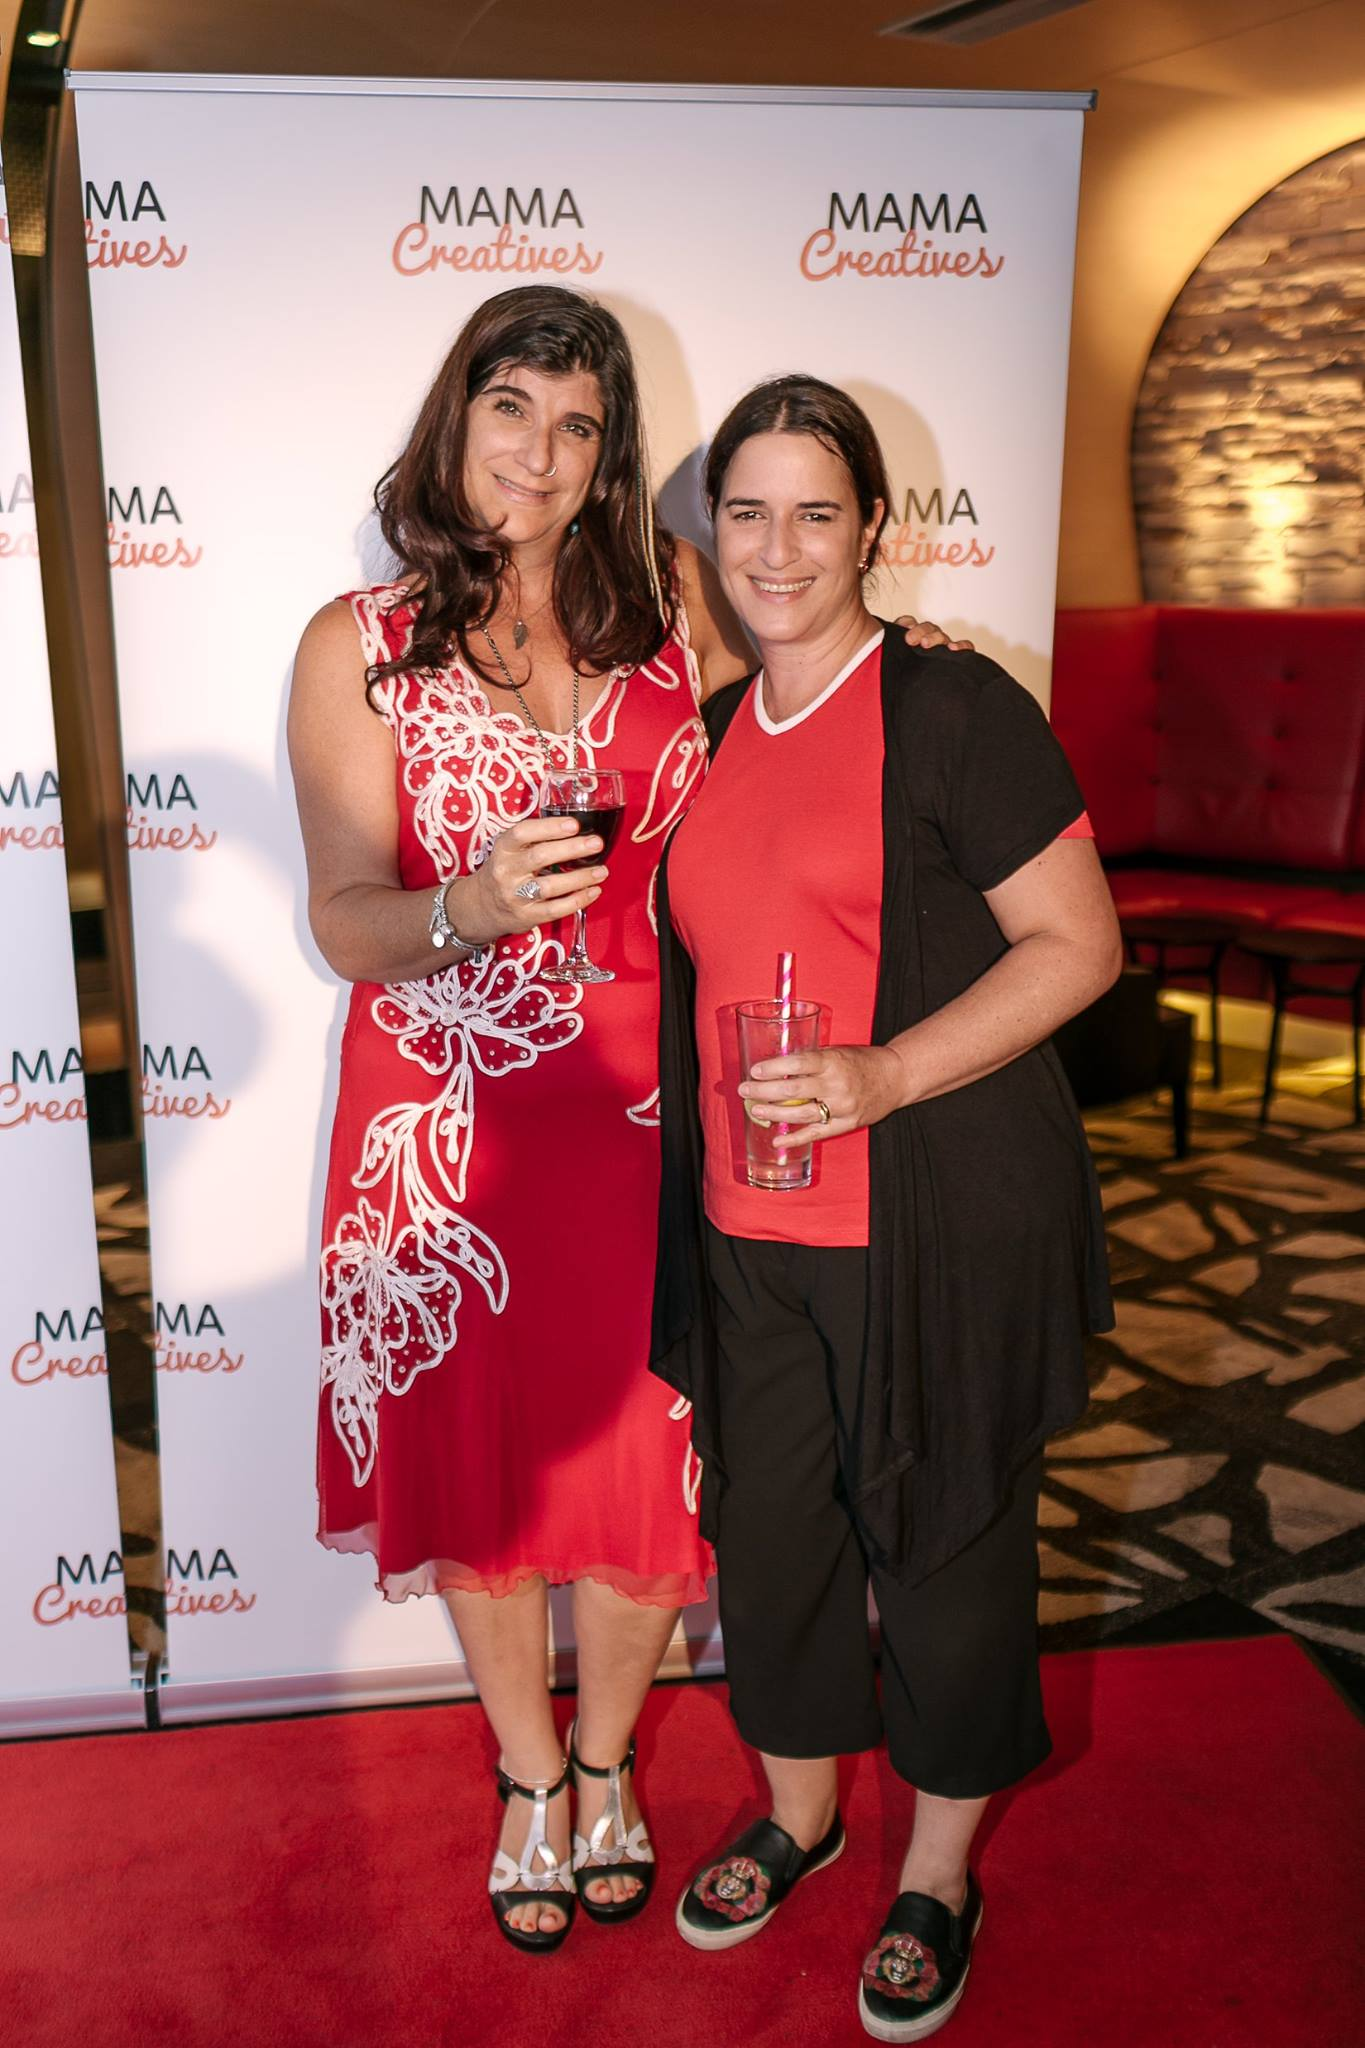 The fabulous writer Joanne Fedler, with Michelle Favero,